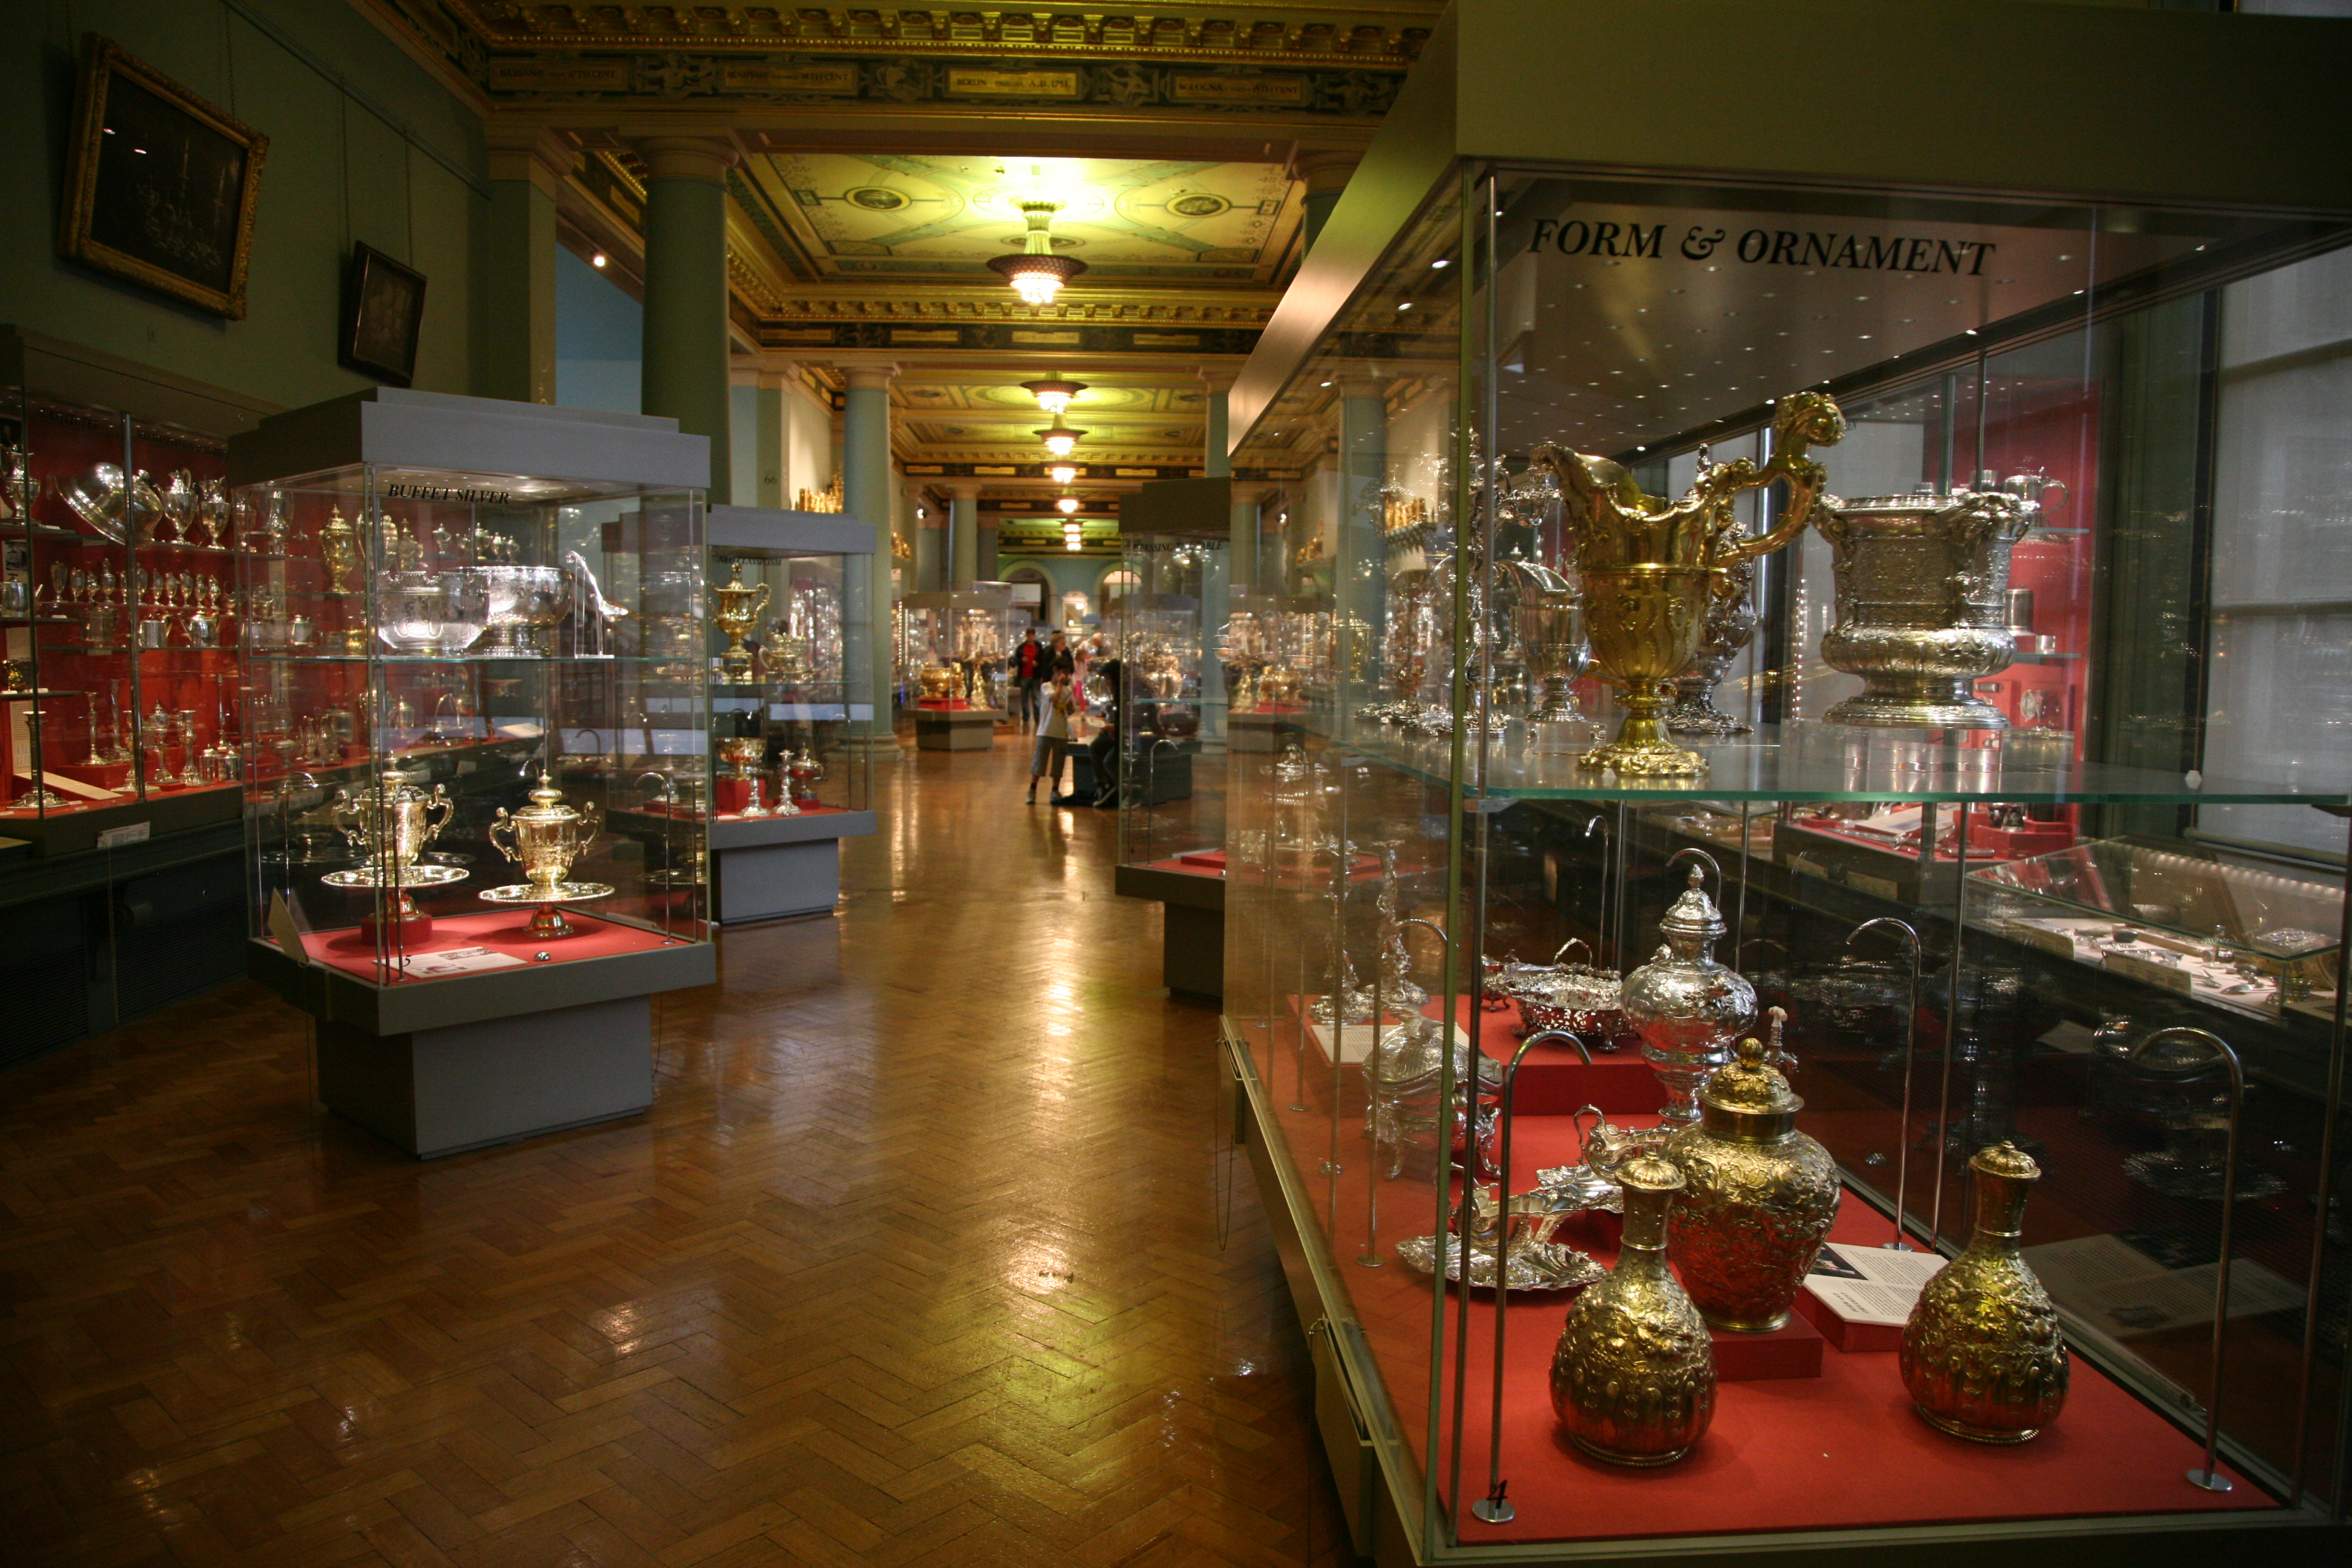 D Exhibition In London : File:london victoria and albert museum silver exhibition room 01.jpg